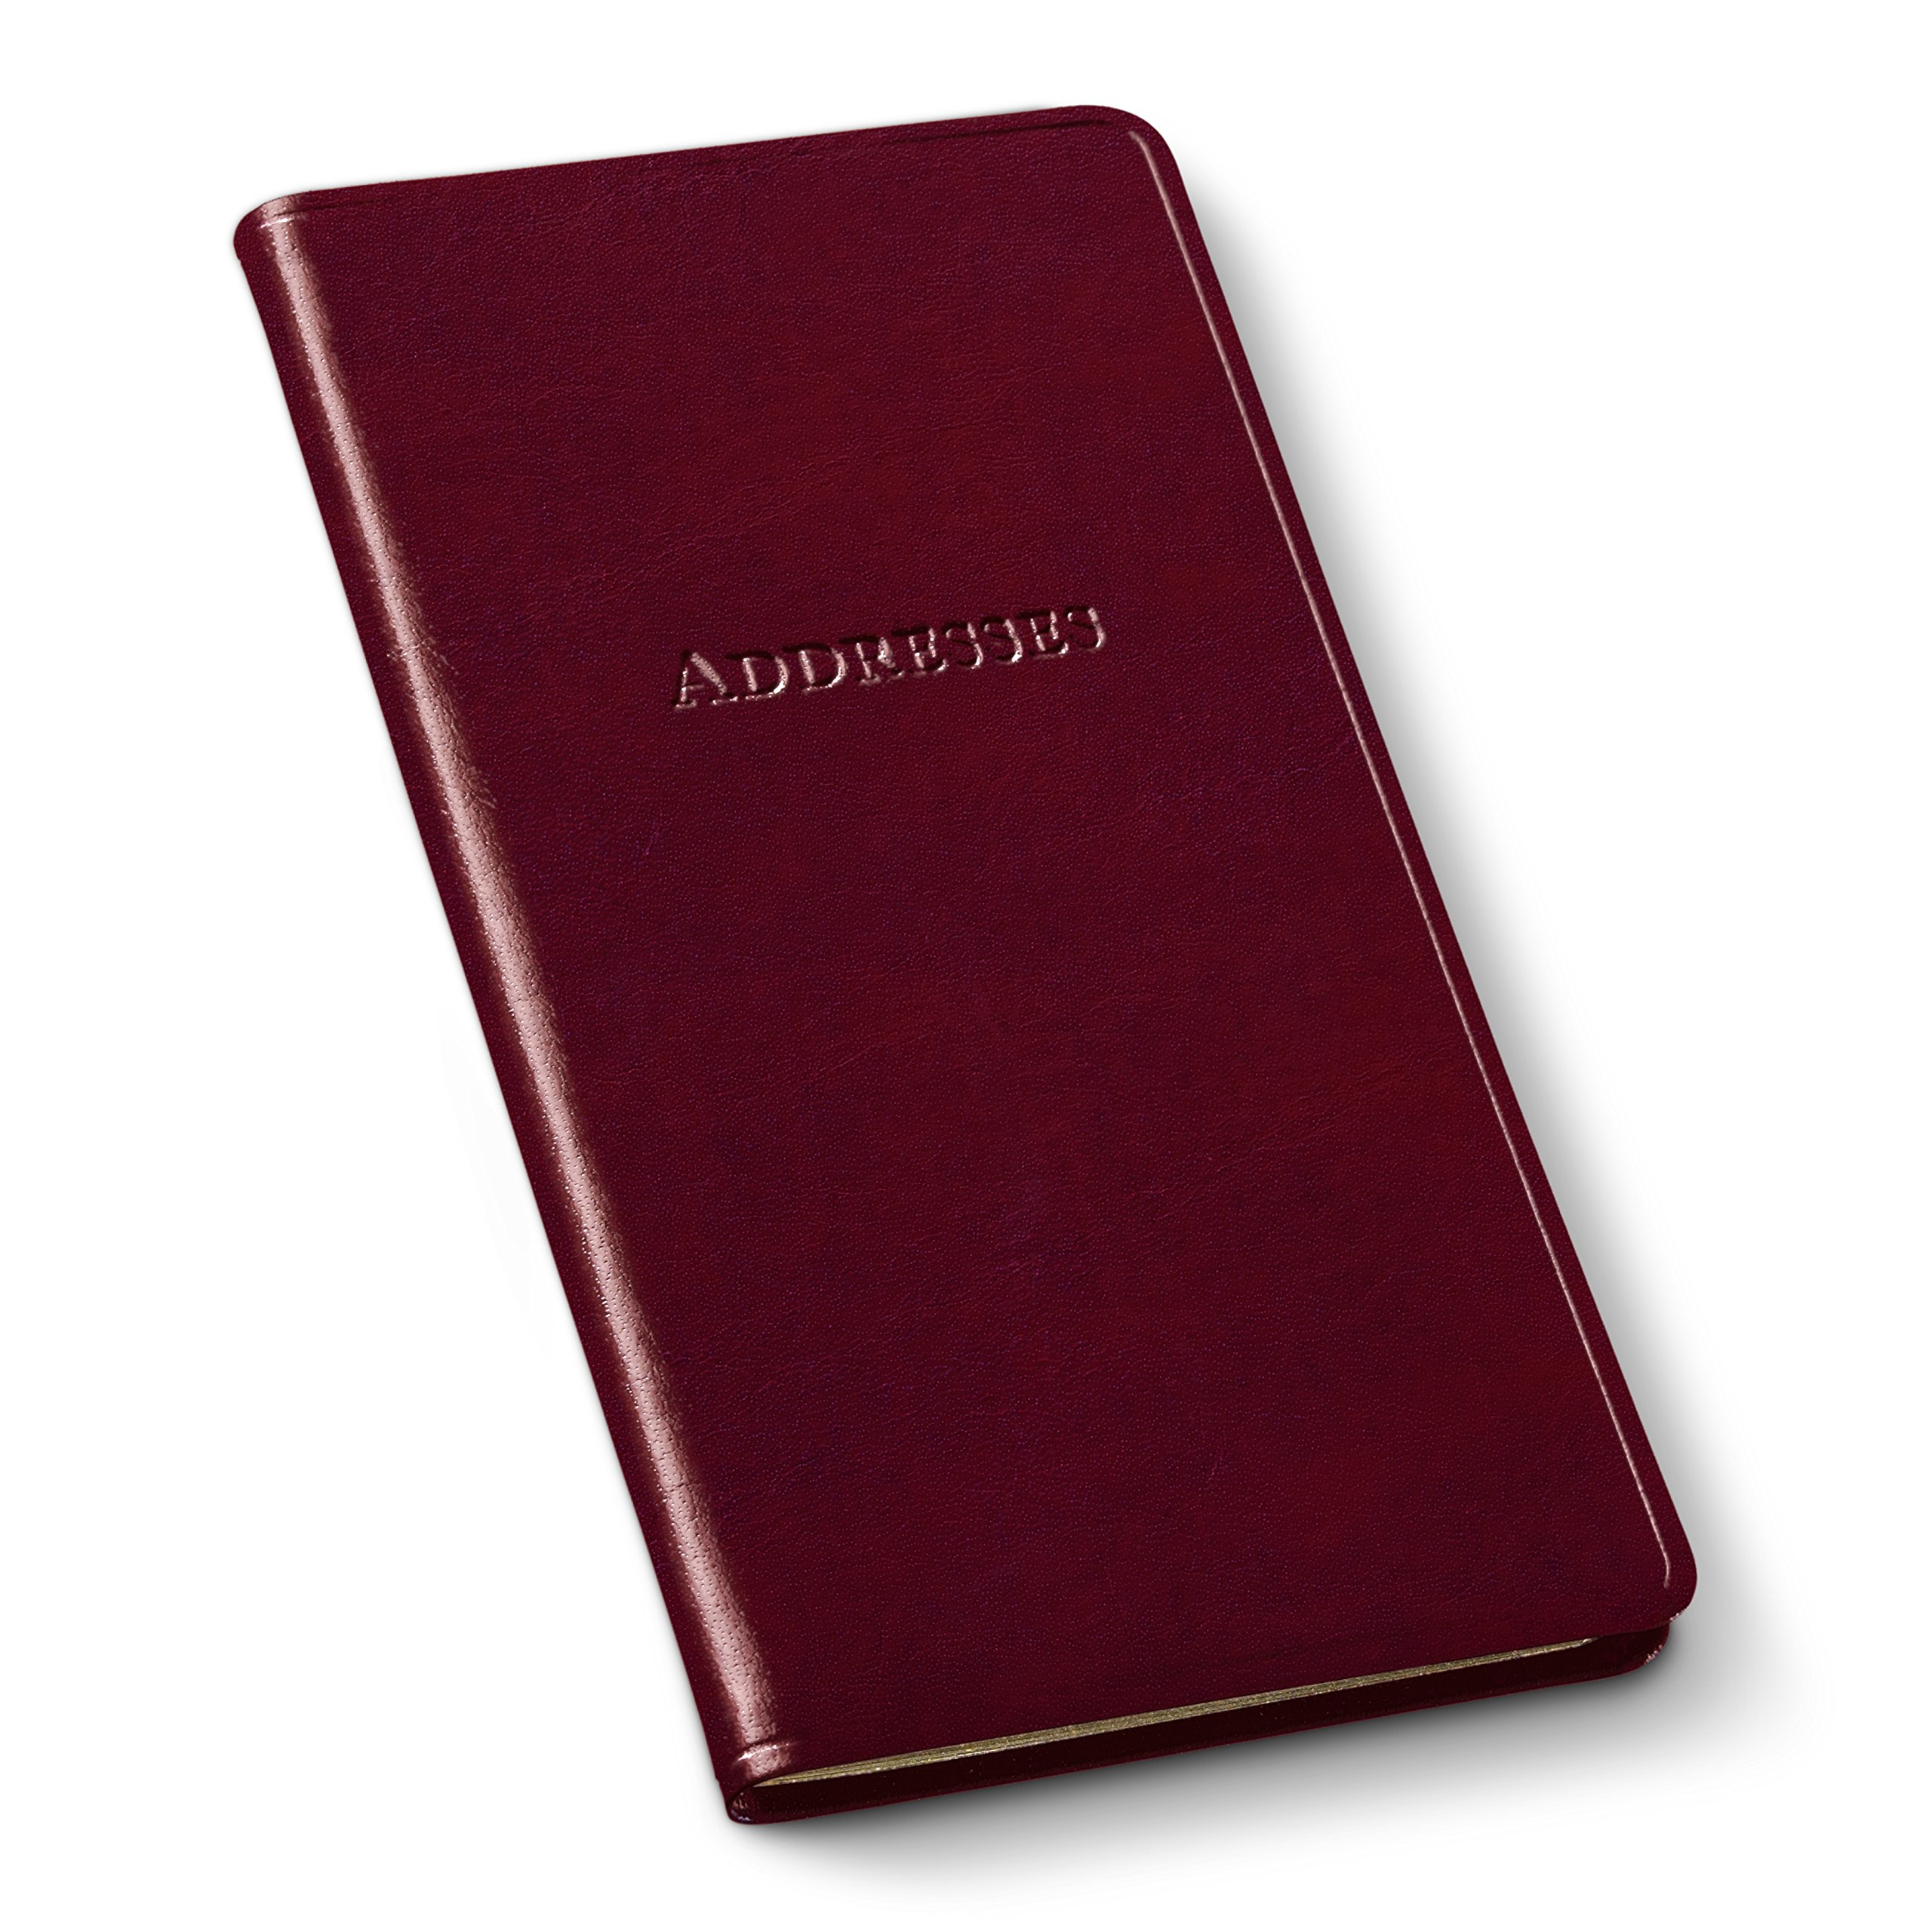 Gallery Leather Pocket Address Organizer Acadia Burgundy by Gallery Leather (Image #1)